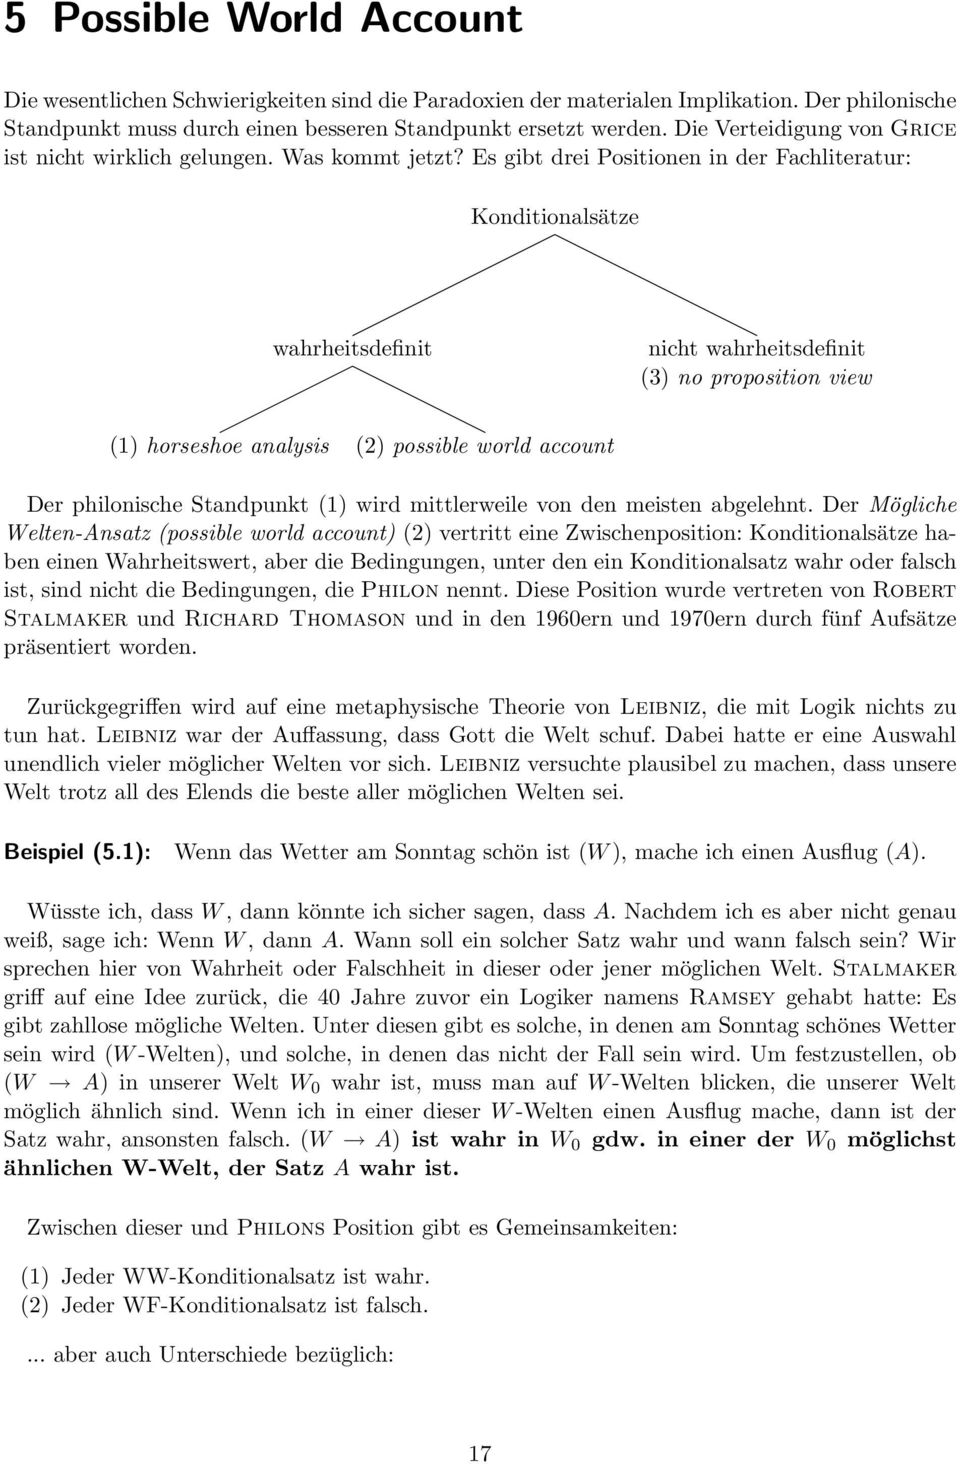 Es gibt drei Positionen in der Fachliteratur: Konditionalsätze wahrheitsdefinit nicht wahrheitsdefinit (3) no proposition view (1) horseshoe analysis (2) possible world account Der philonische